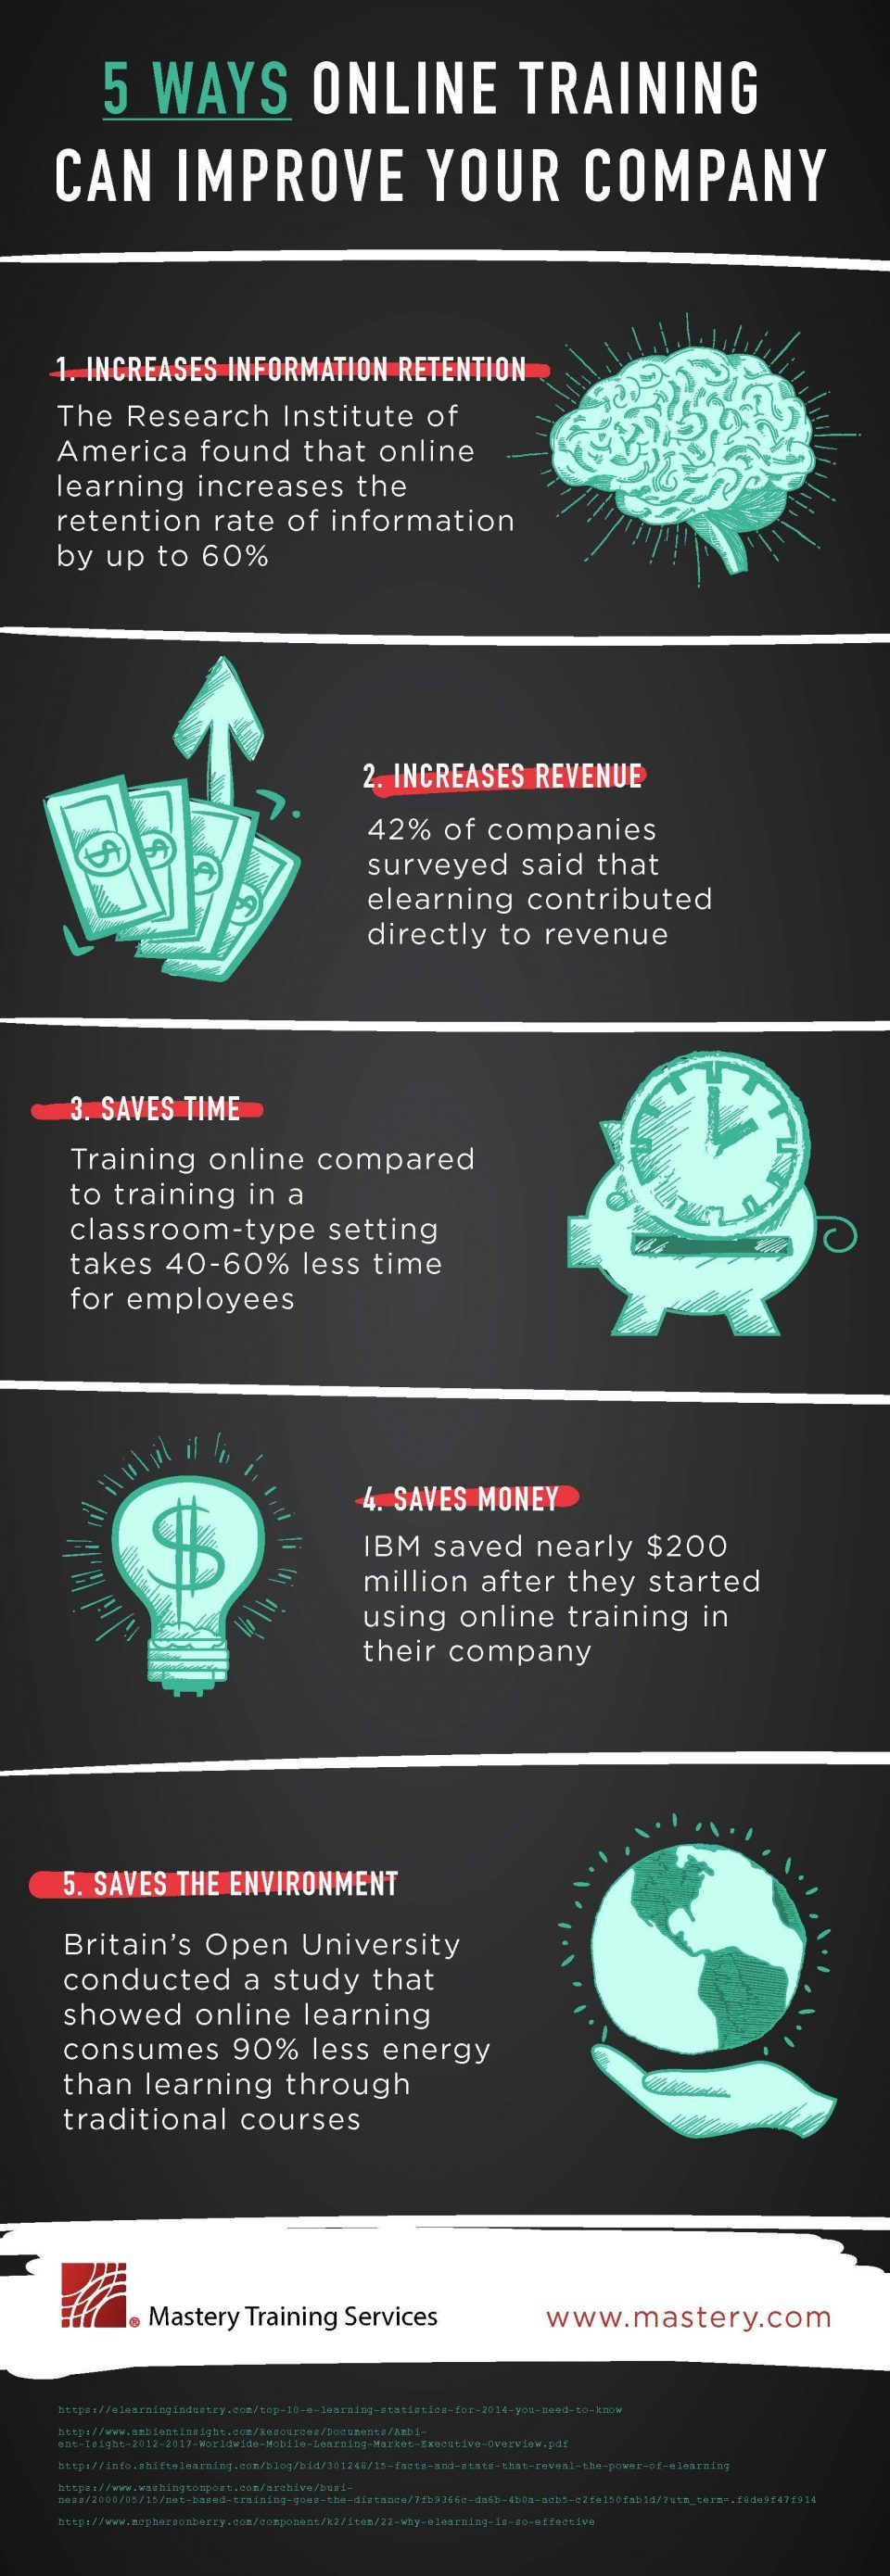 5 Ways Online Training Can Improve Your Company Infographic